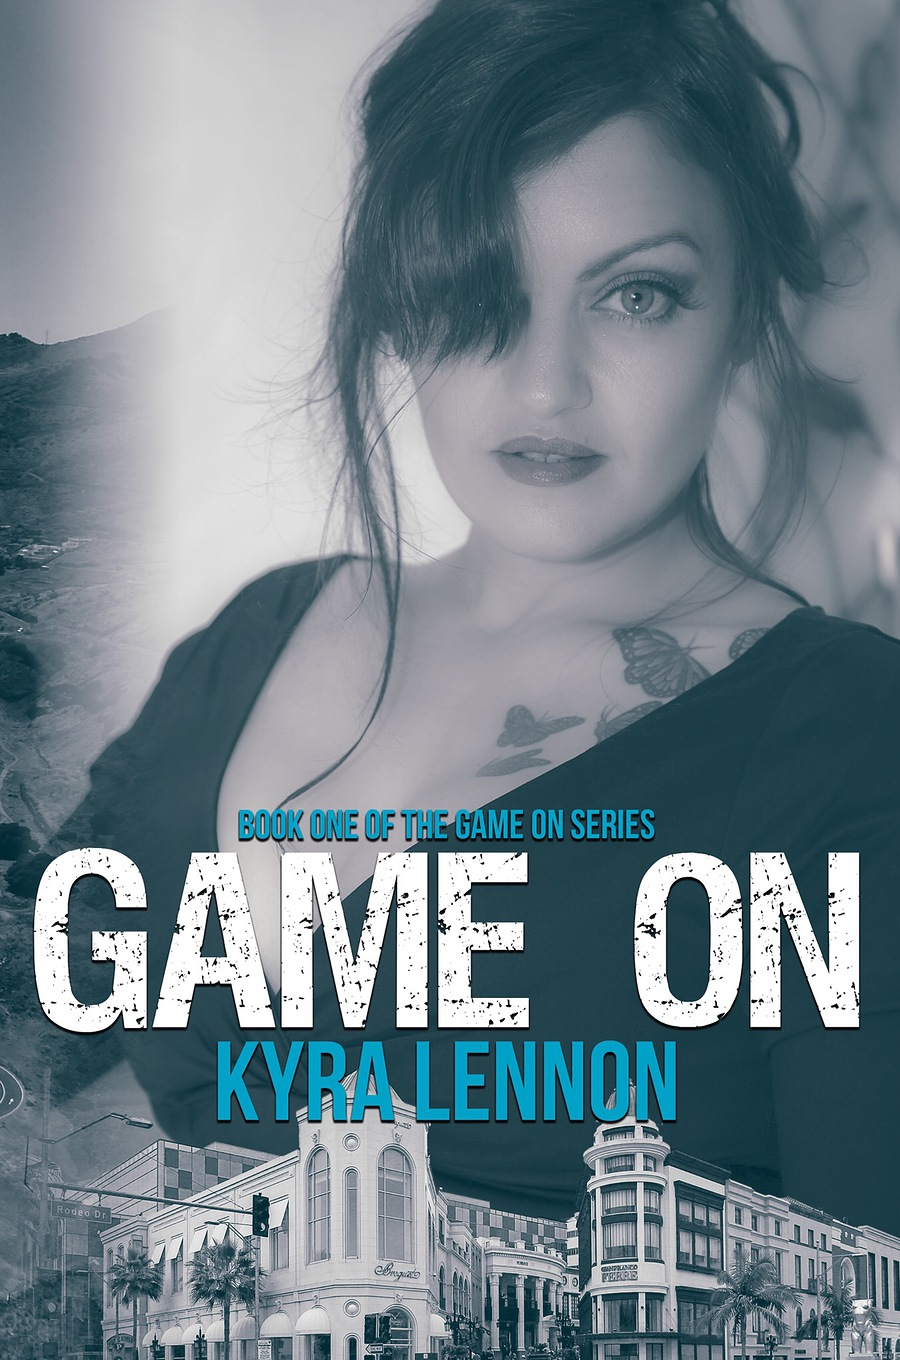 Book cover number 2! Game on / Model AutumnJones / Uploaded 27th April 2017 @ 08:12 PM